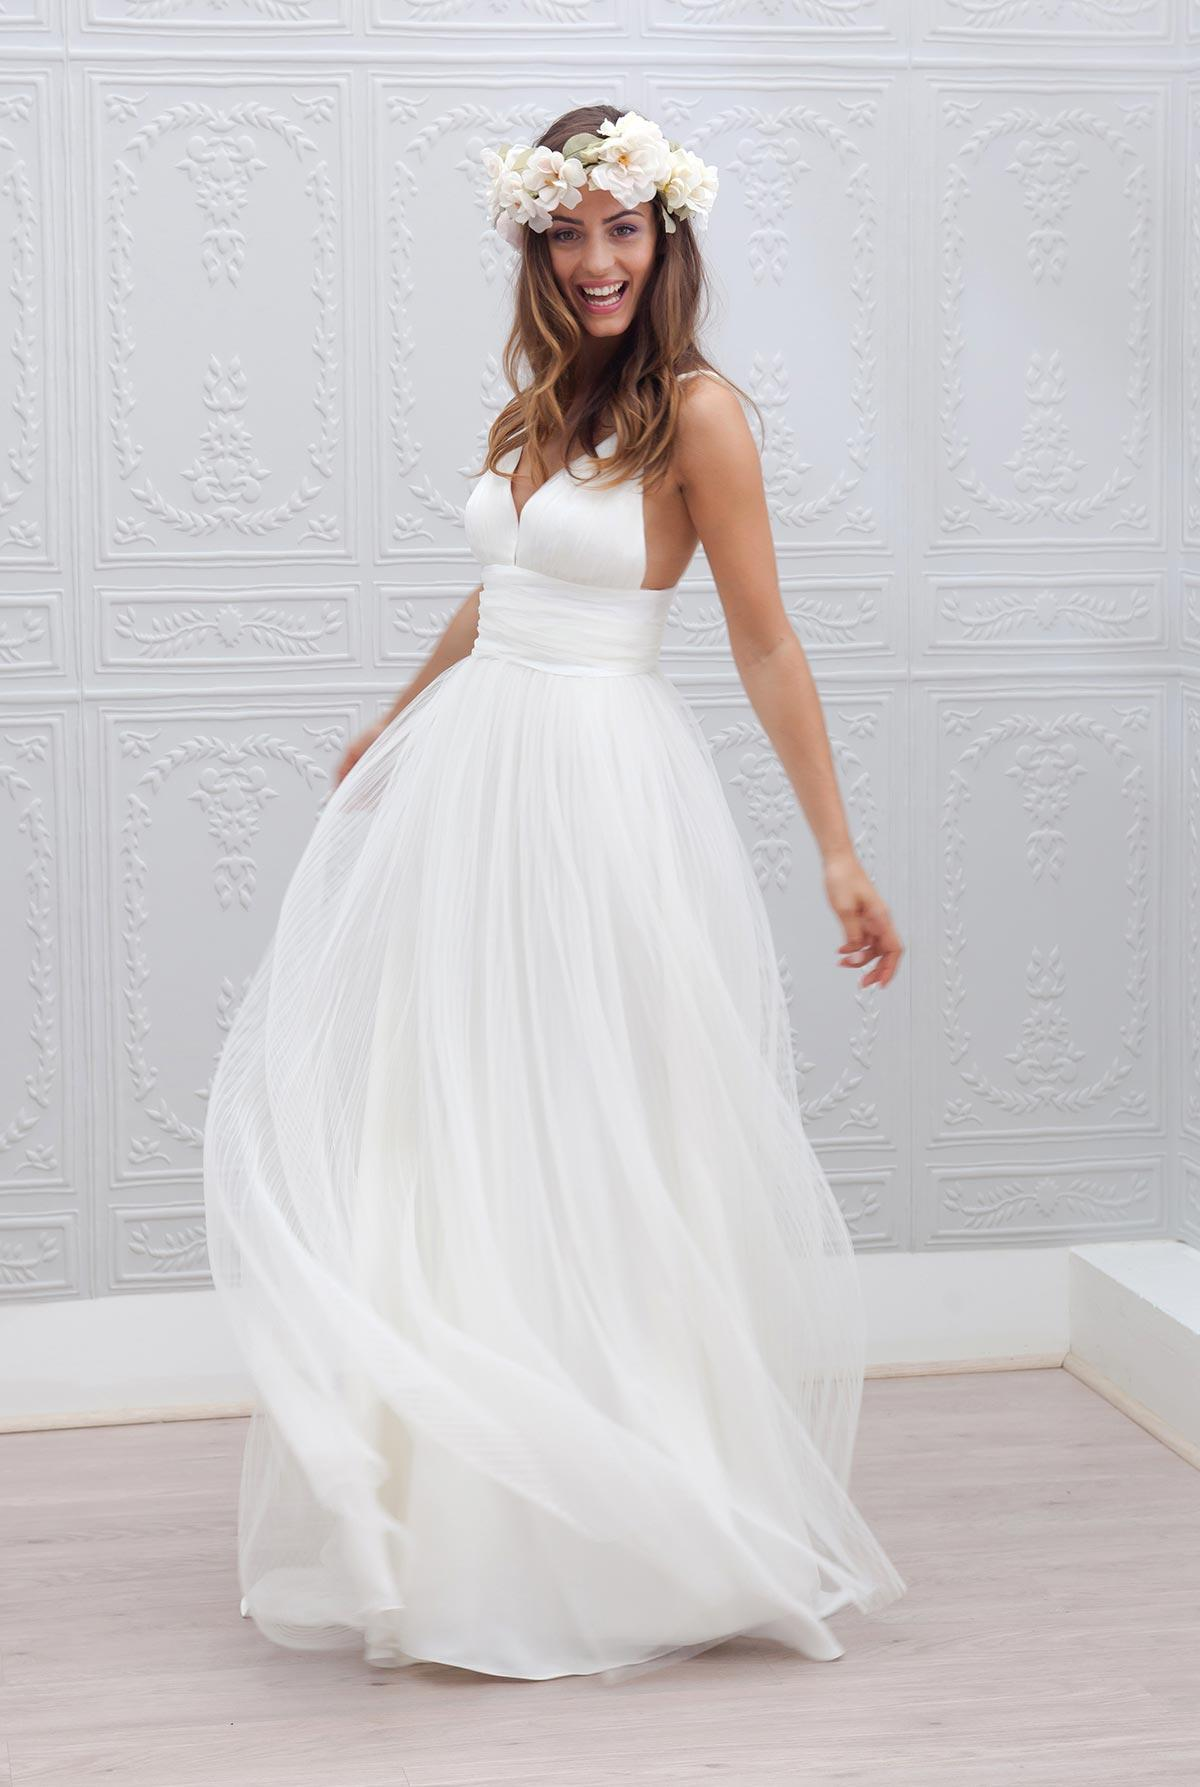 2016 Tulle Beach Wedding Dresses Cutaway Sides Deep V Neck Cheaper